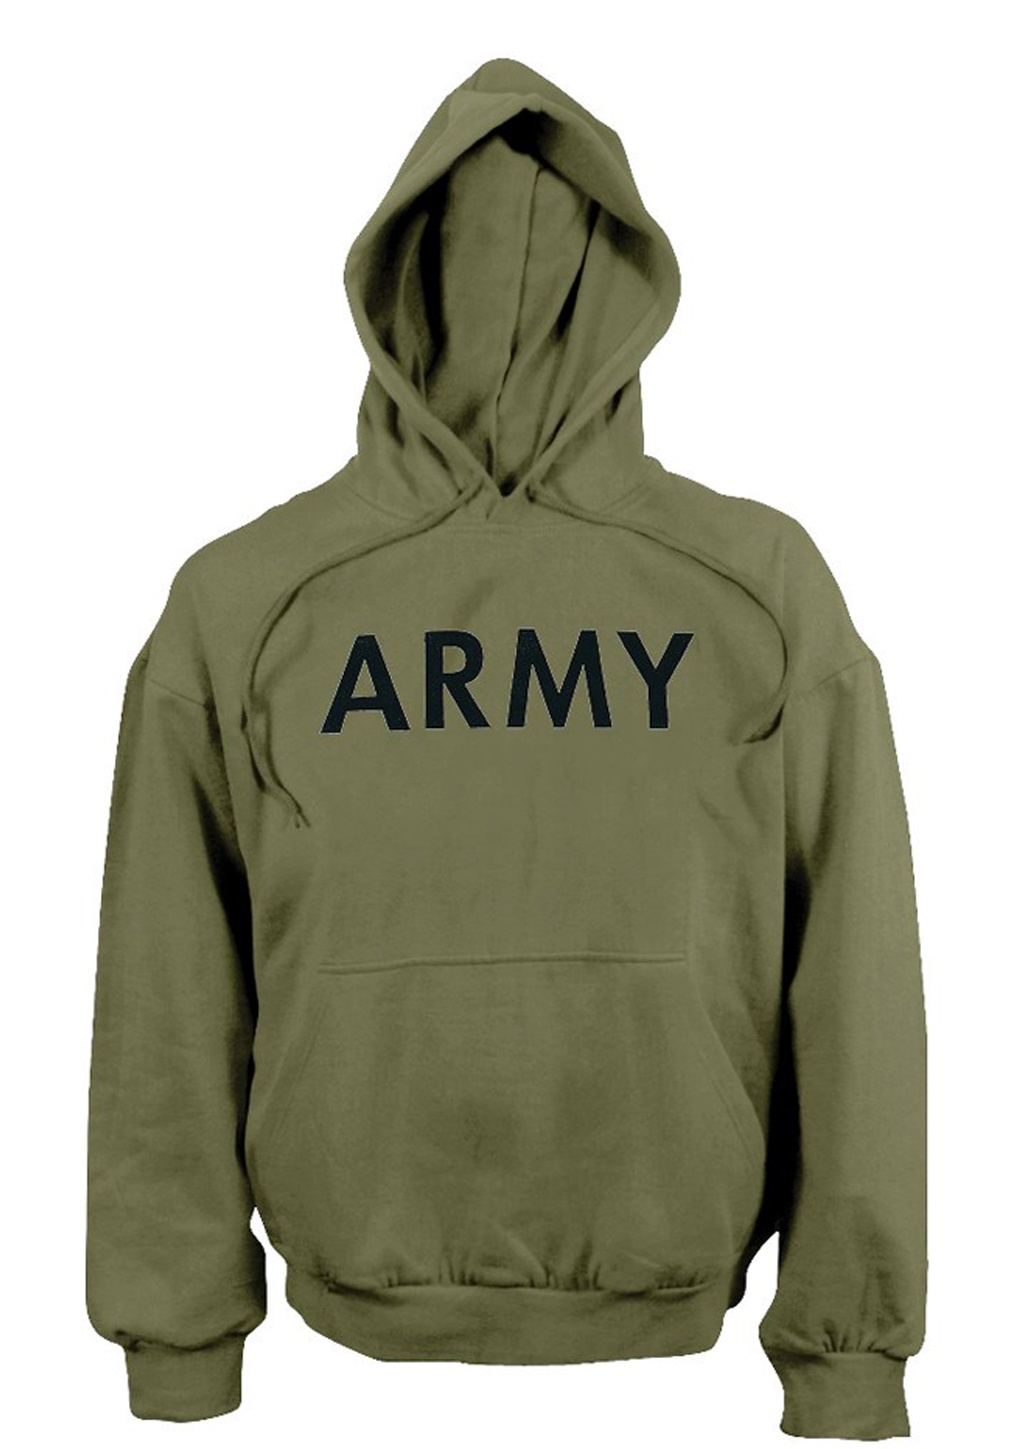 Army Hooded Pullover Sweatshirt